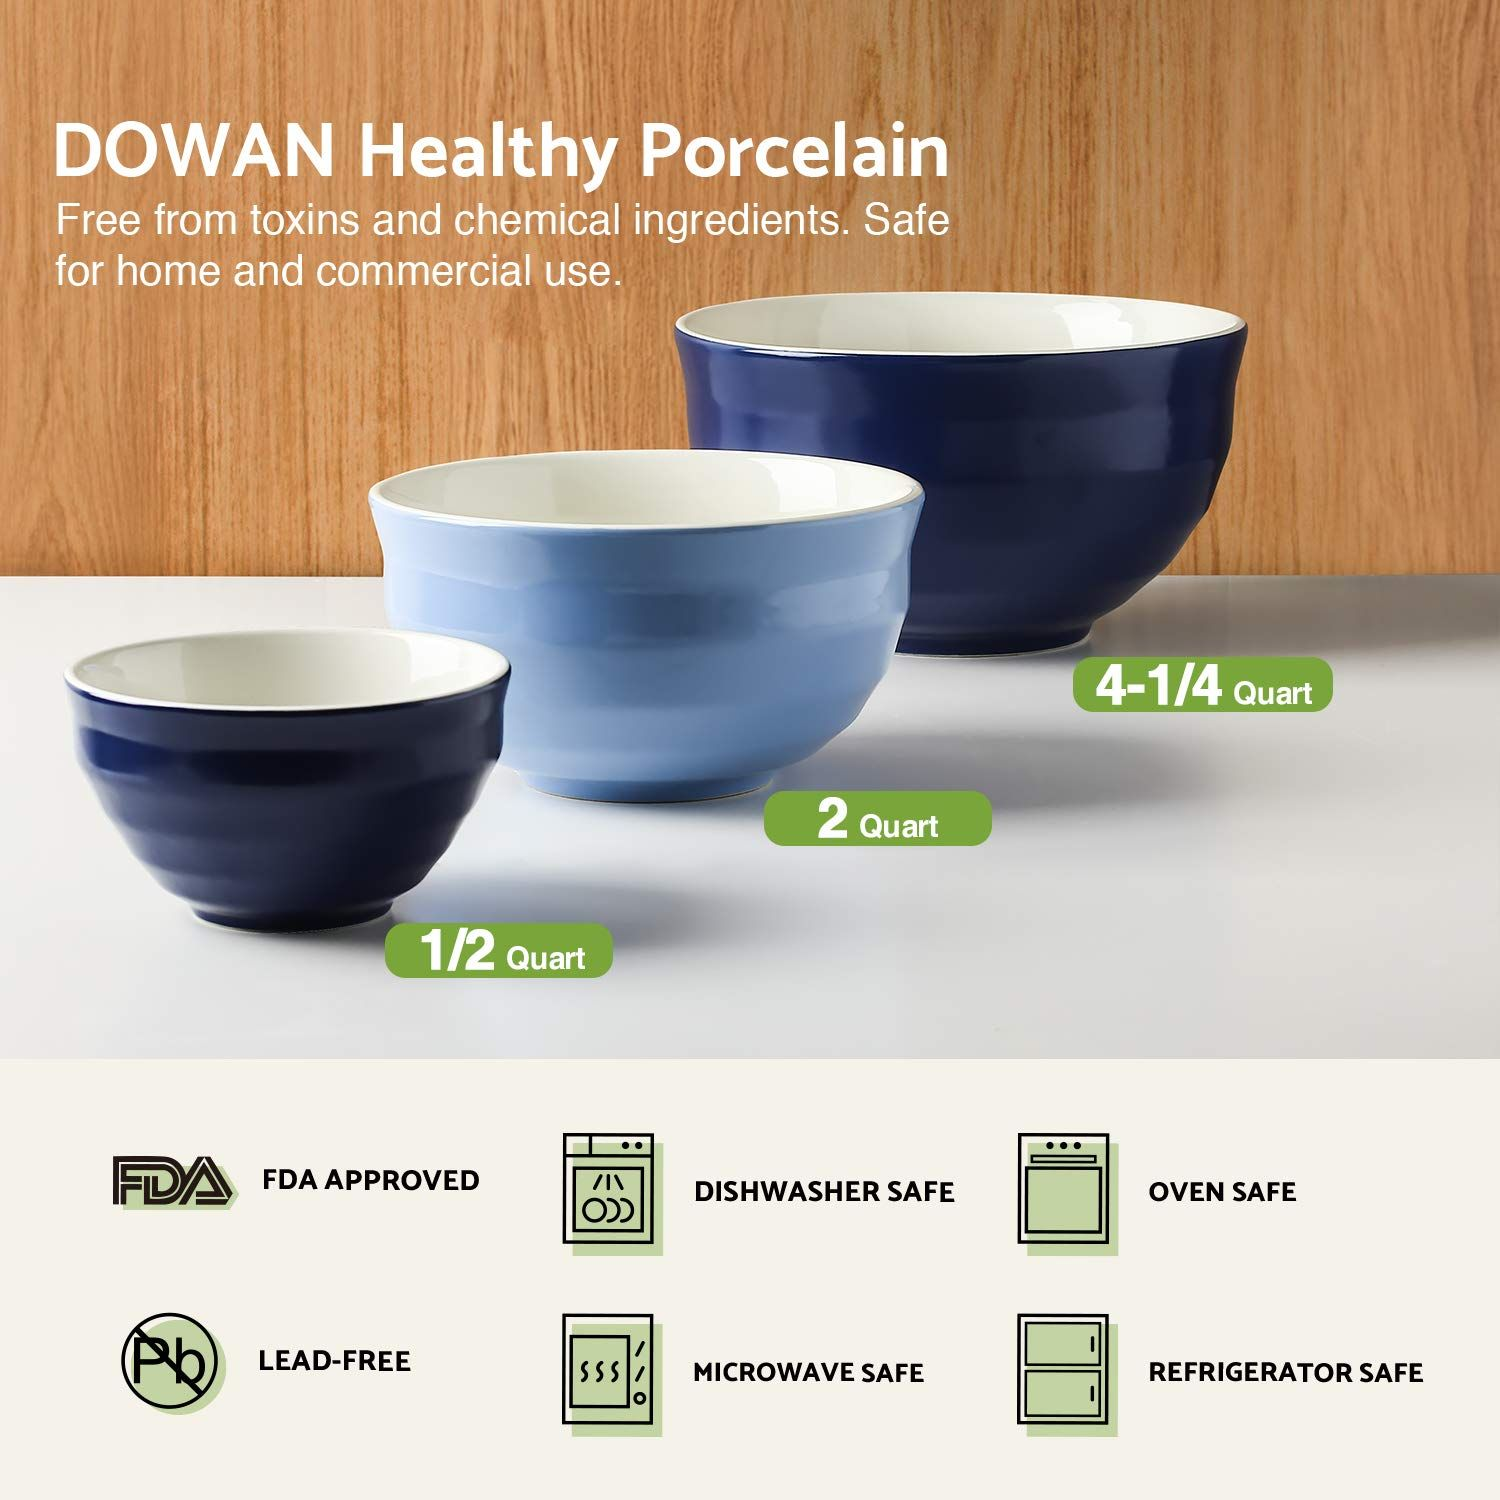 Dowan Ceramic Mixing Bowls Serving Bowl Set Nonslip Soft Curve On The Outside Design Of The Bowls 0 5 Qt 2 Mixing Bowls Ceramic Mixing Bowls Serving Bowl Set